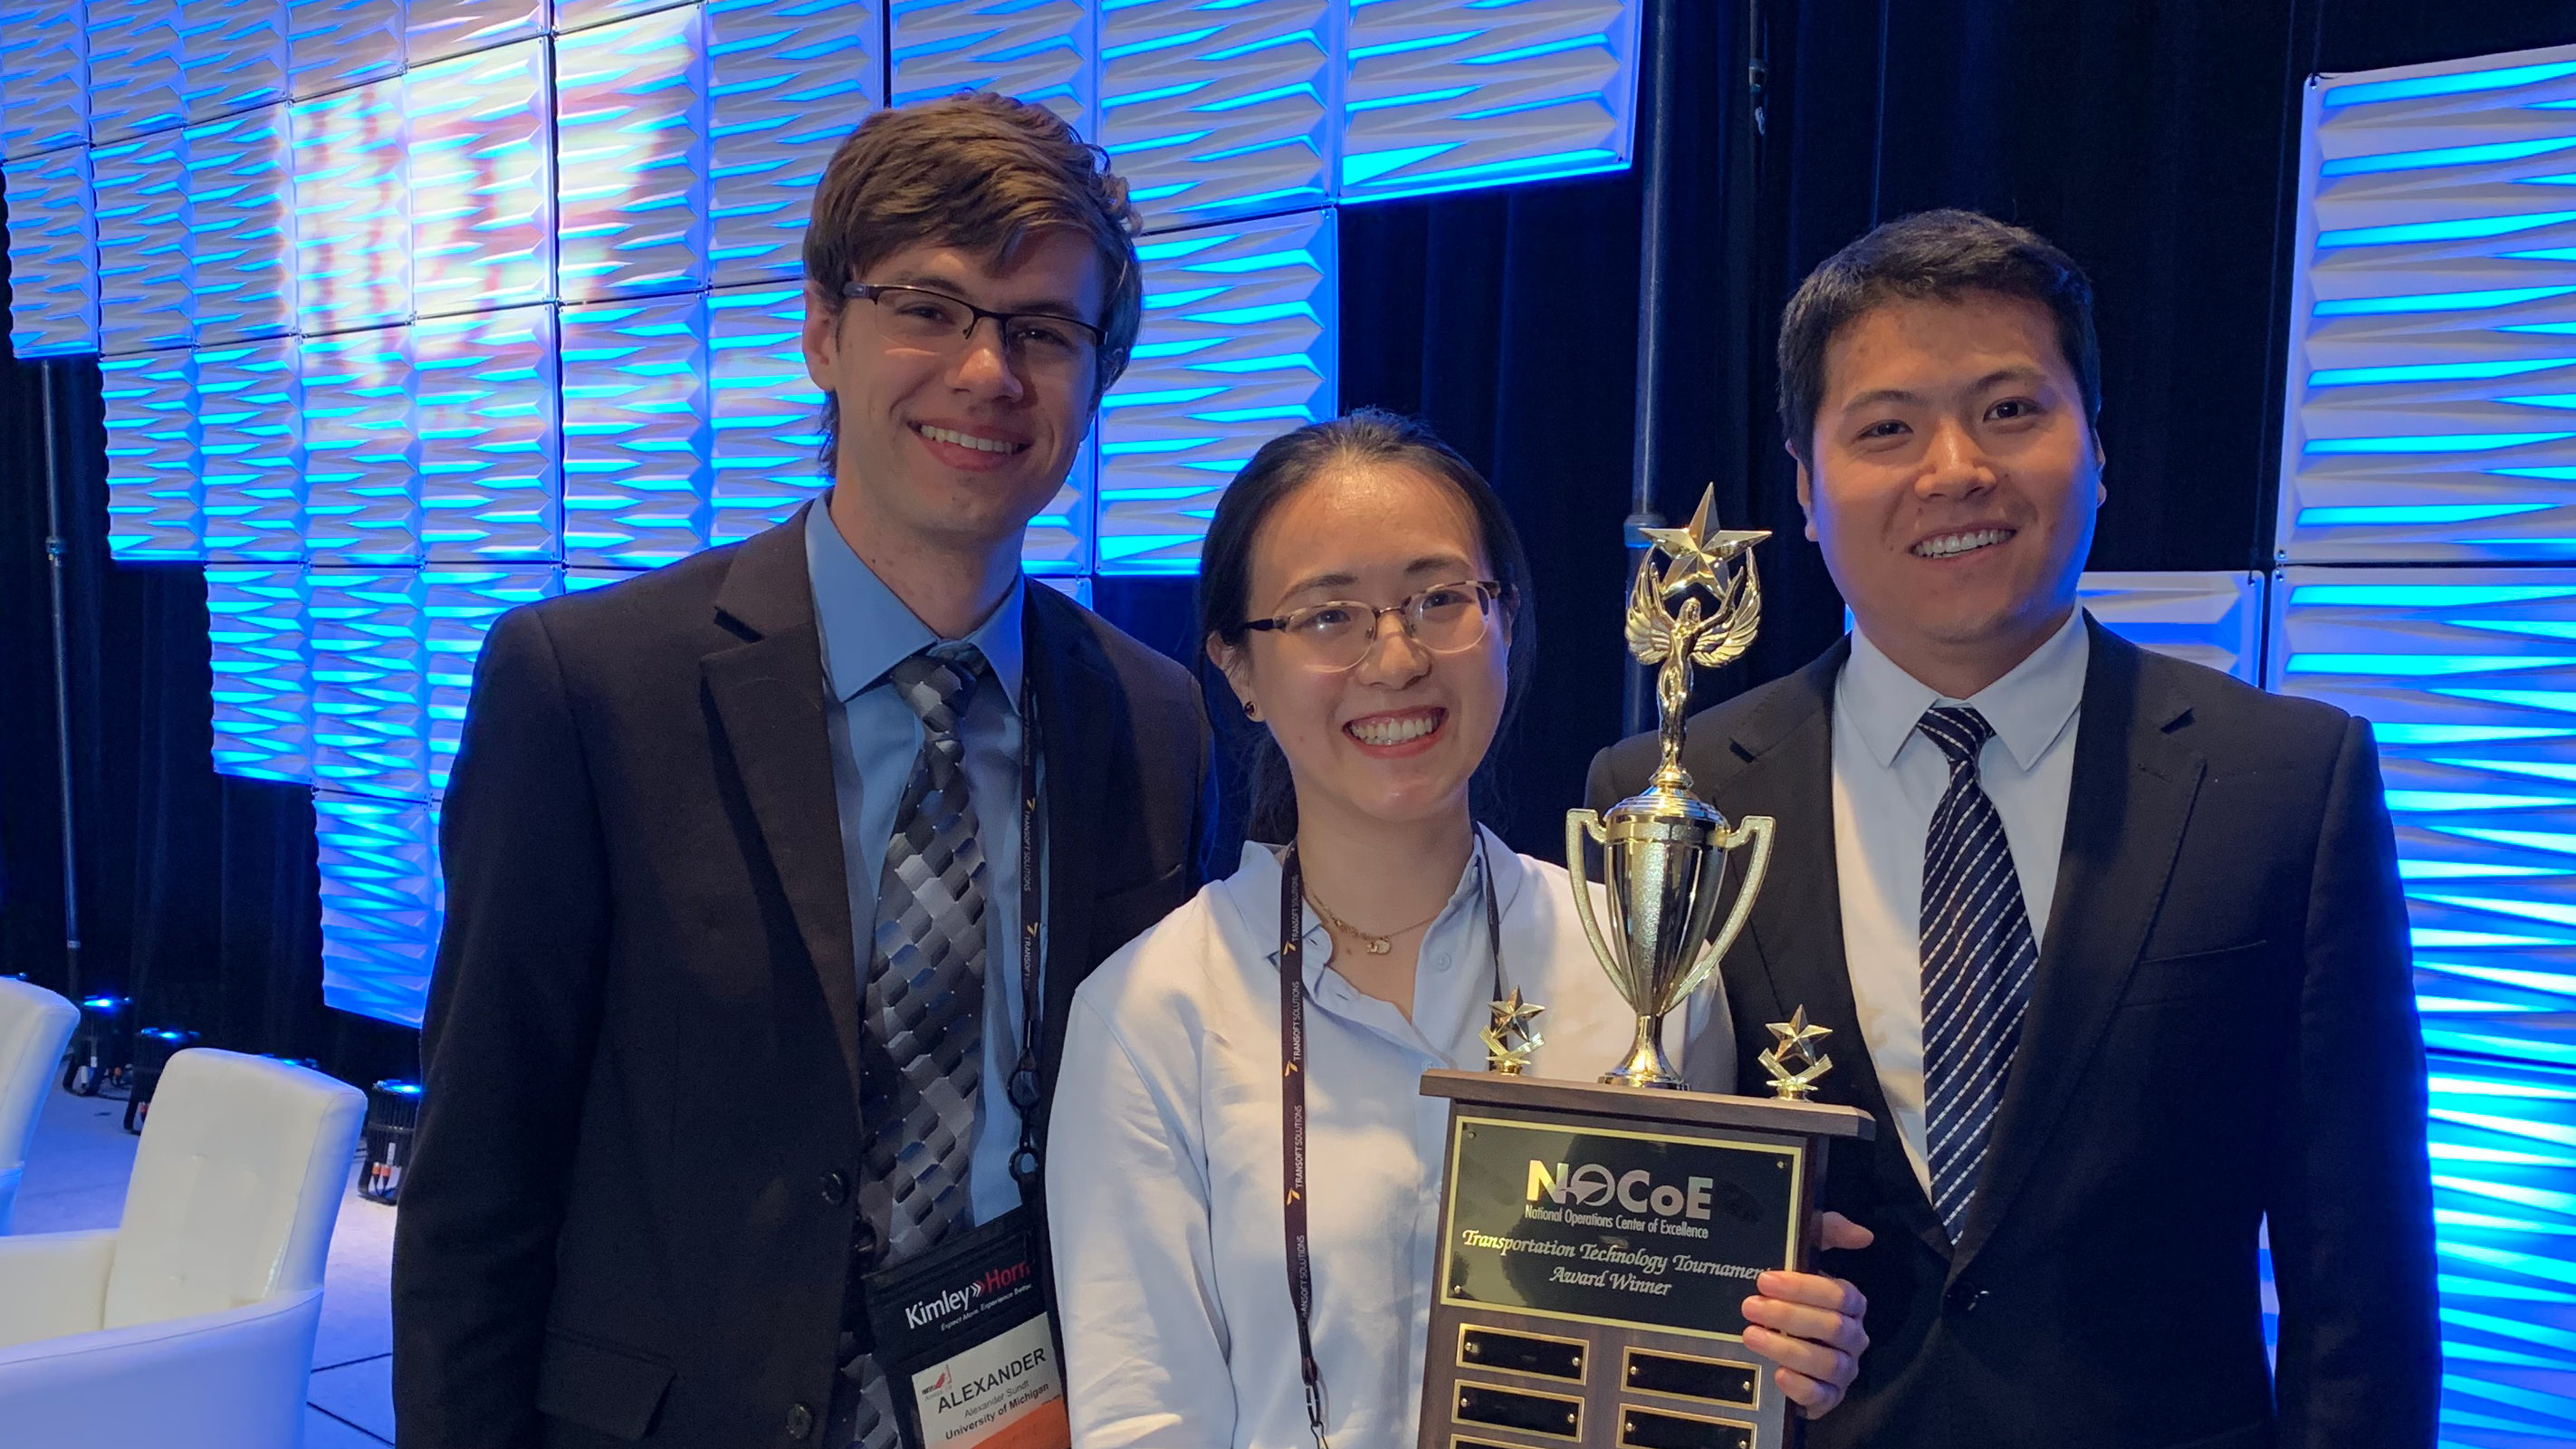 University of Michigan team members Alex Sundt, Xiatong Sun and Yan Zhao with their trophy. Photo: Adam Hopps, National Operations Center of Excellence